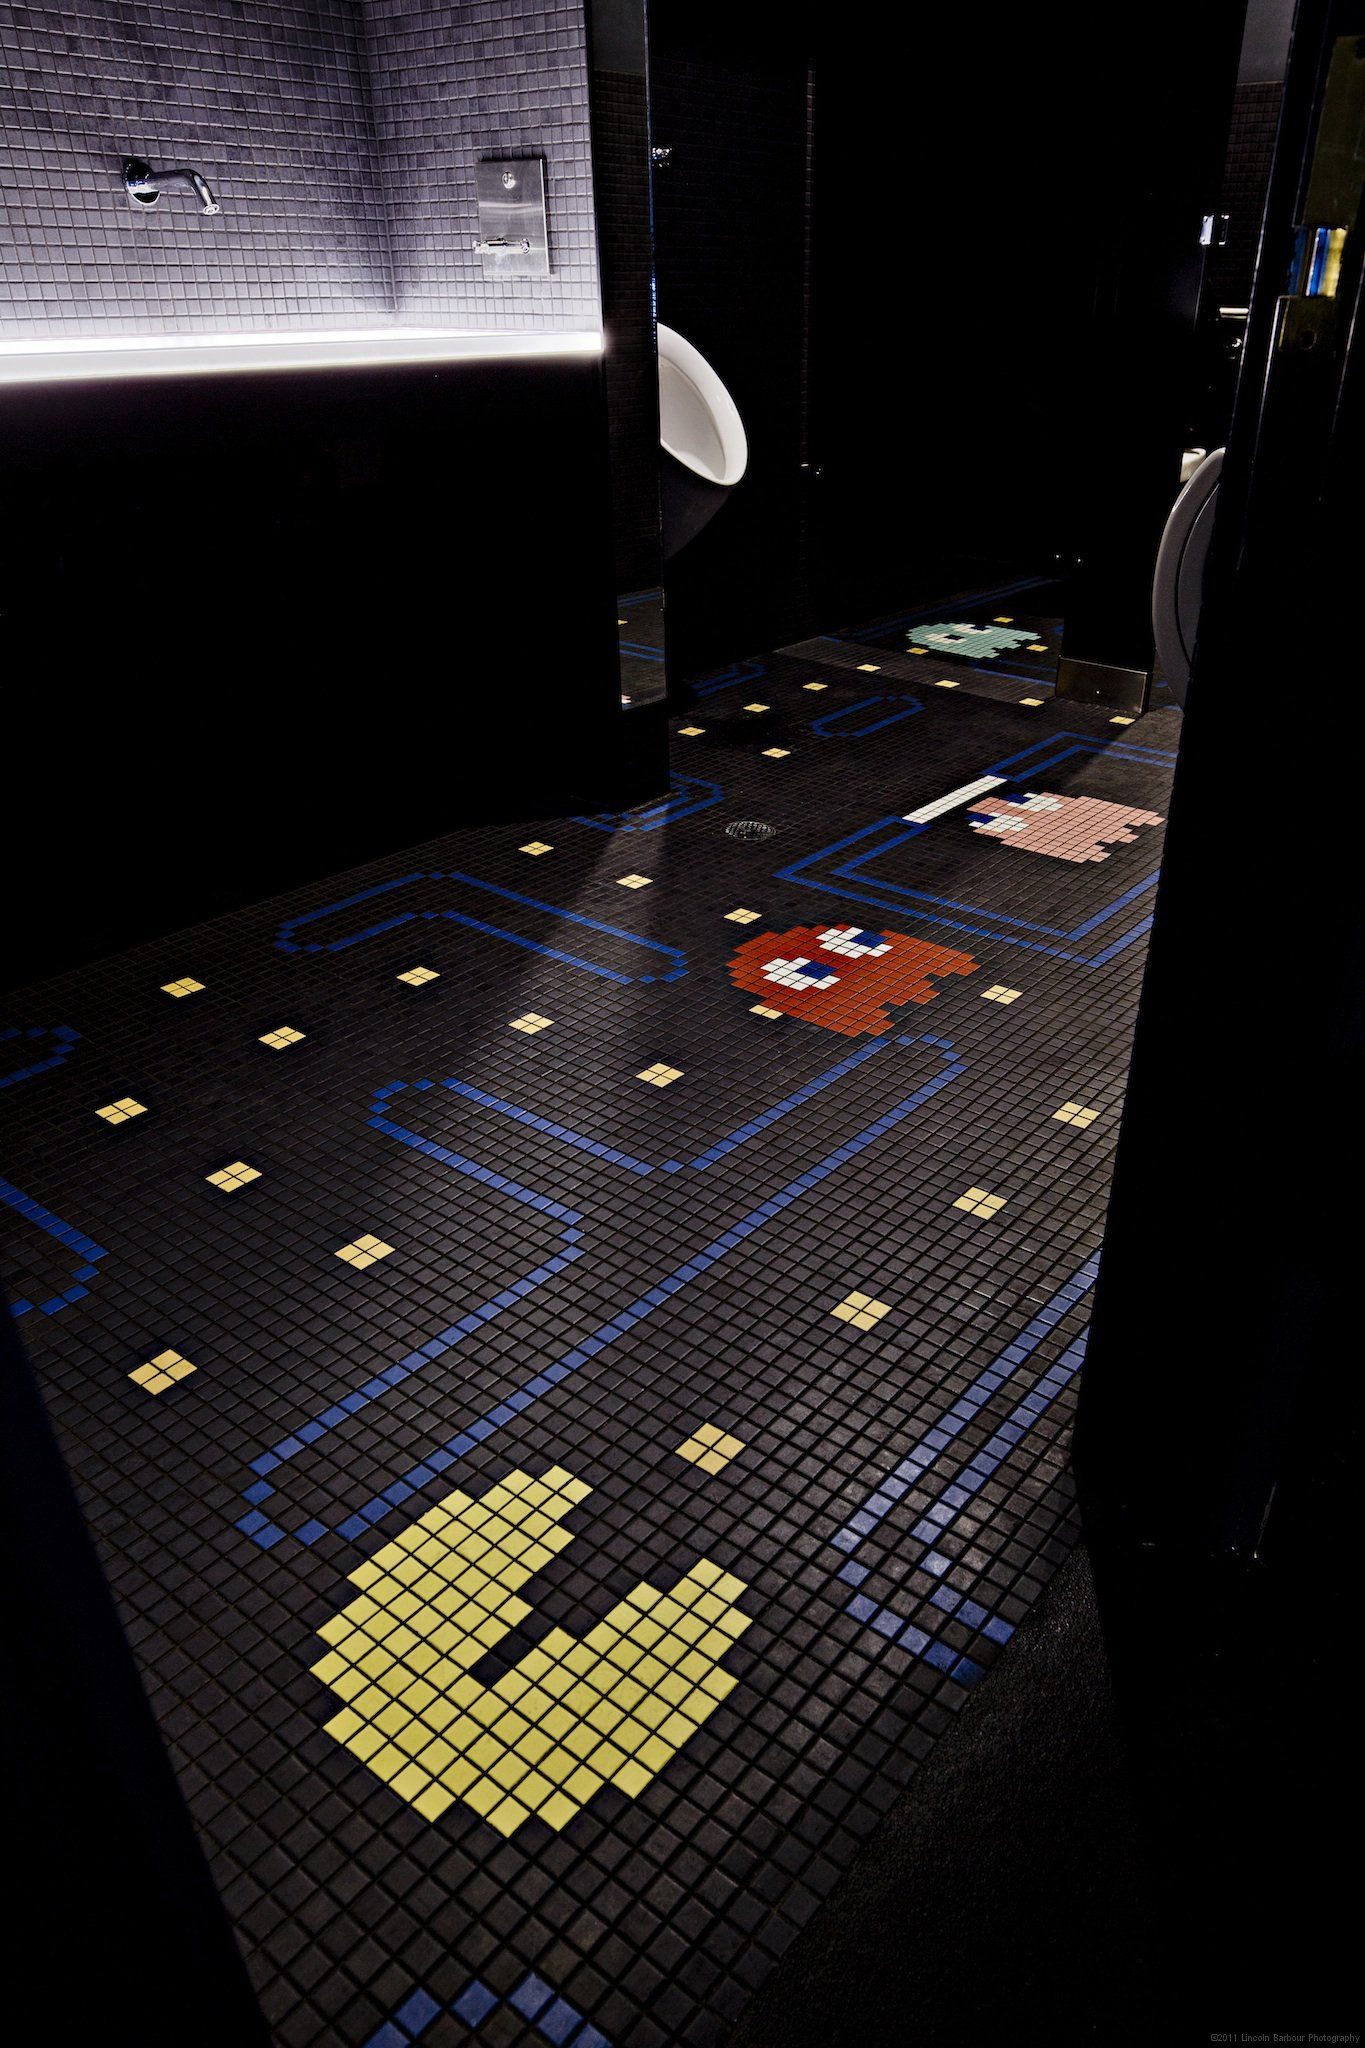 Pin On Gaming And Video Game Rooms